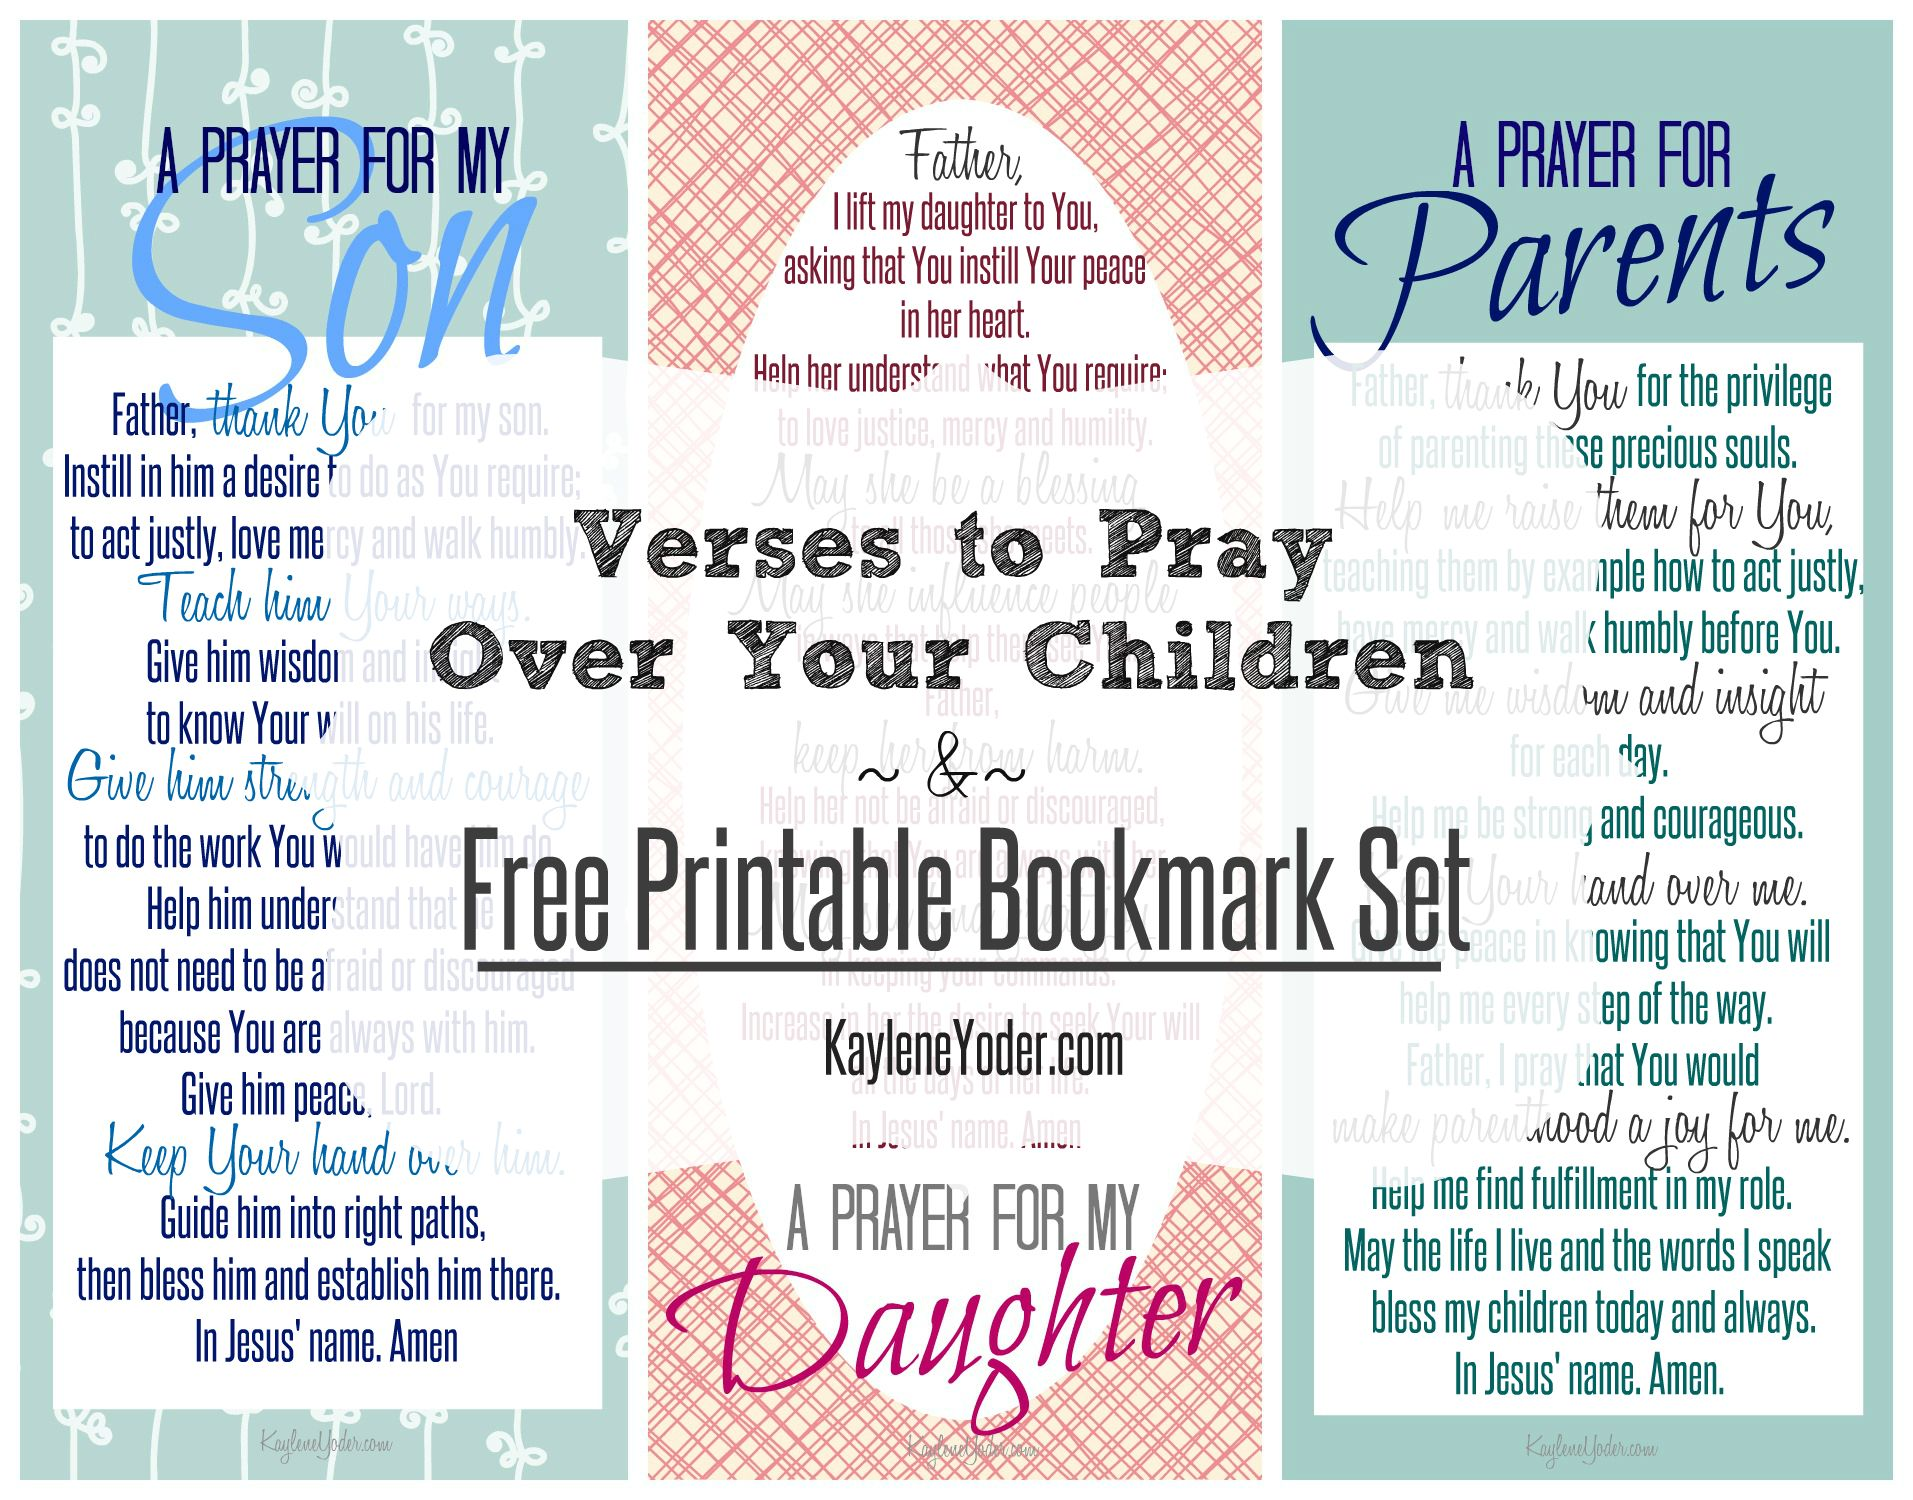 Why you should pray for your children's and five verses to pray over them. PLUS free printable bookmark set!